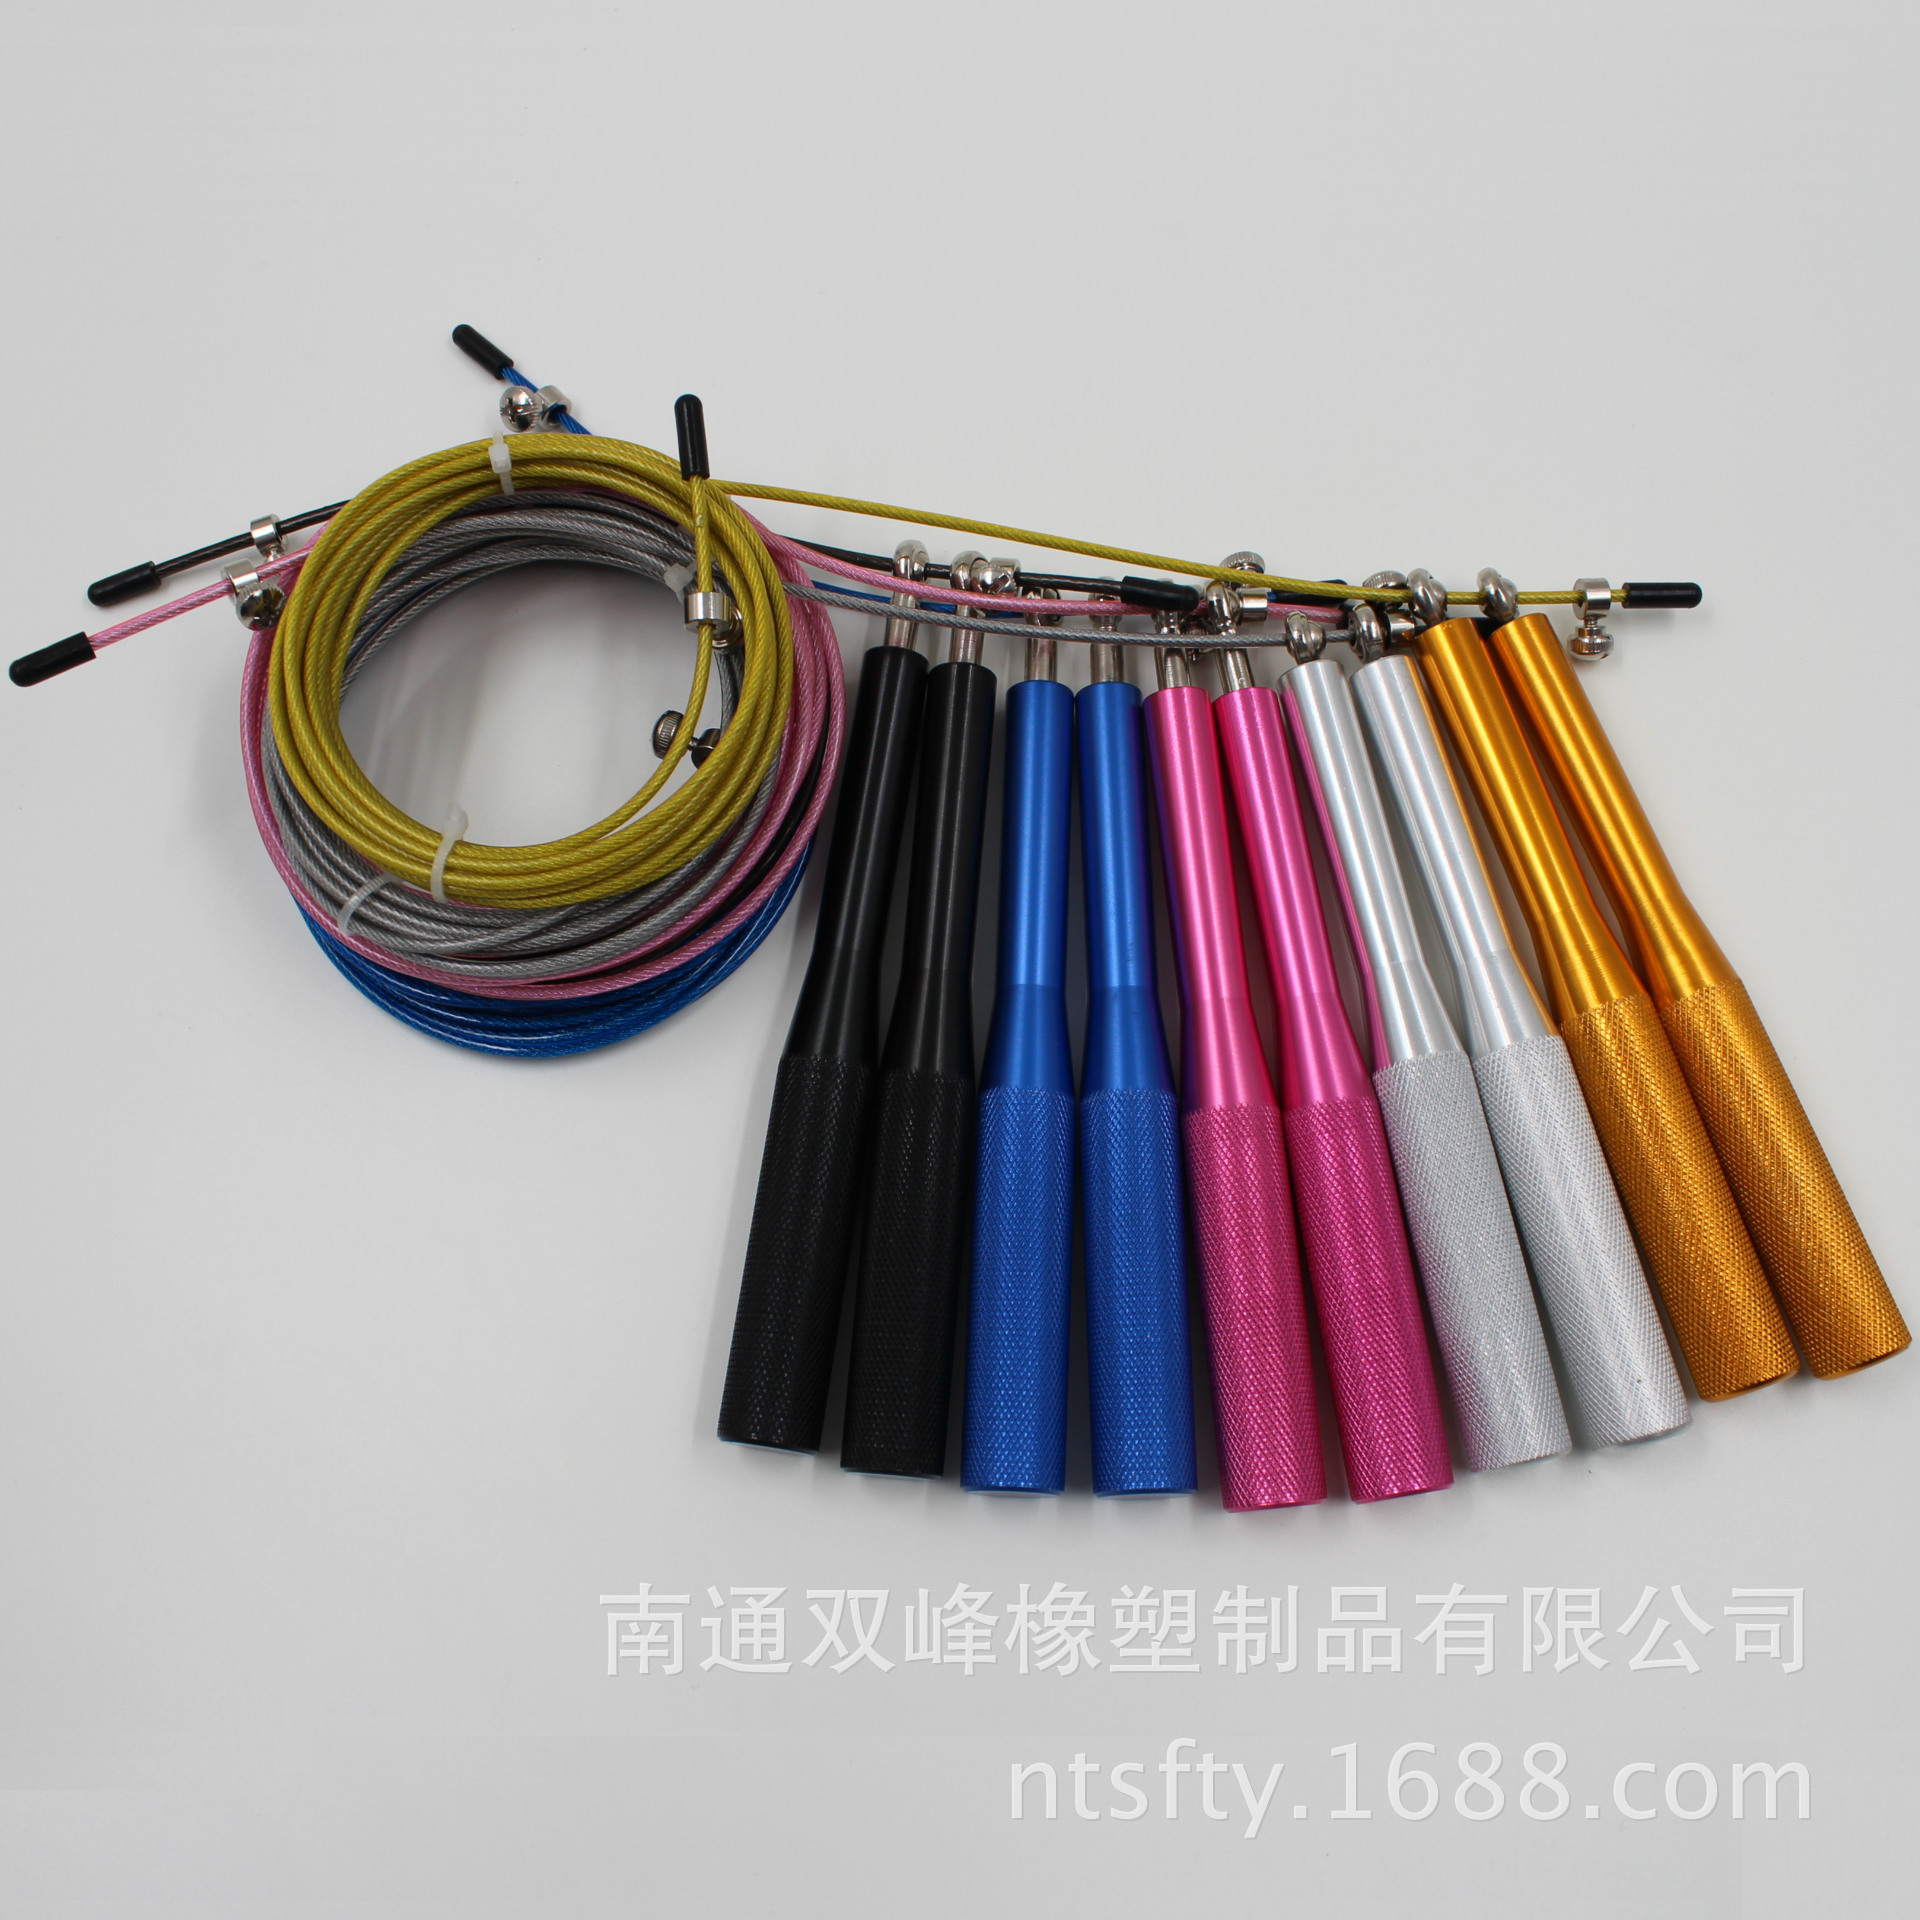 Factory Wholesale Universal Jump Rope Steel Wire Bearing National Higher Education Entrance Examination Export Foreign Trade Adj